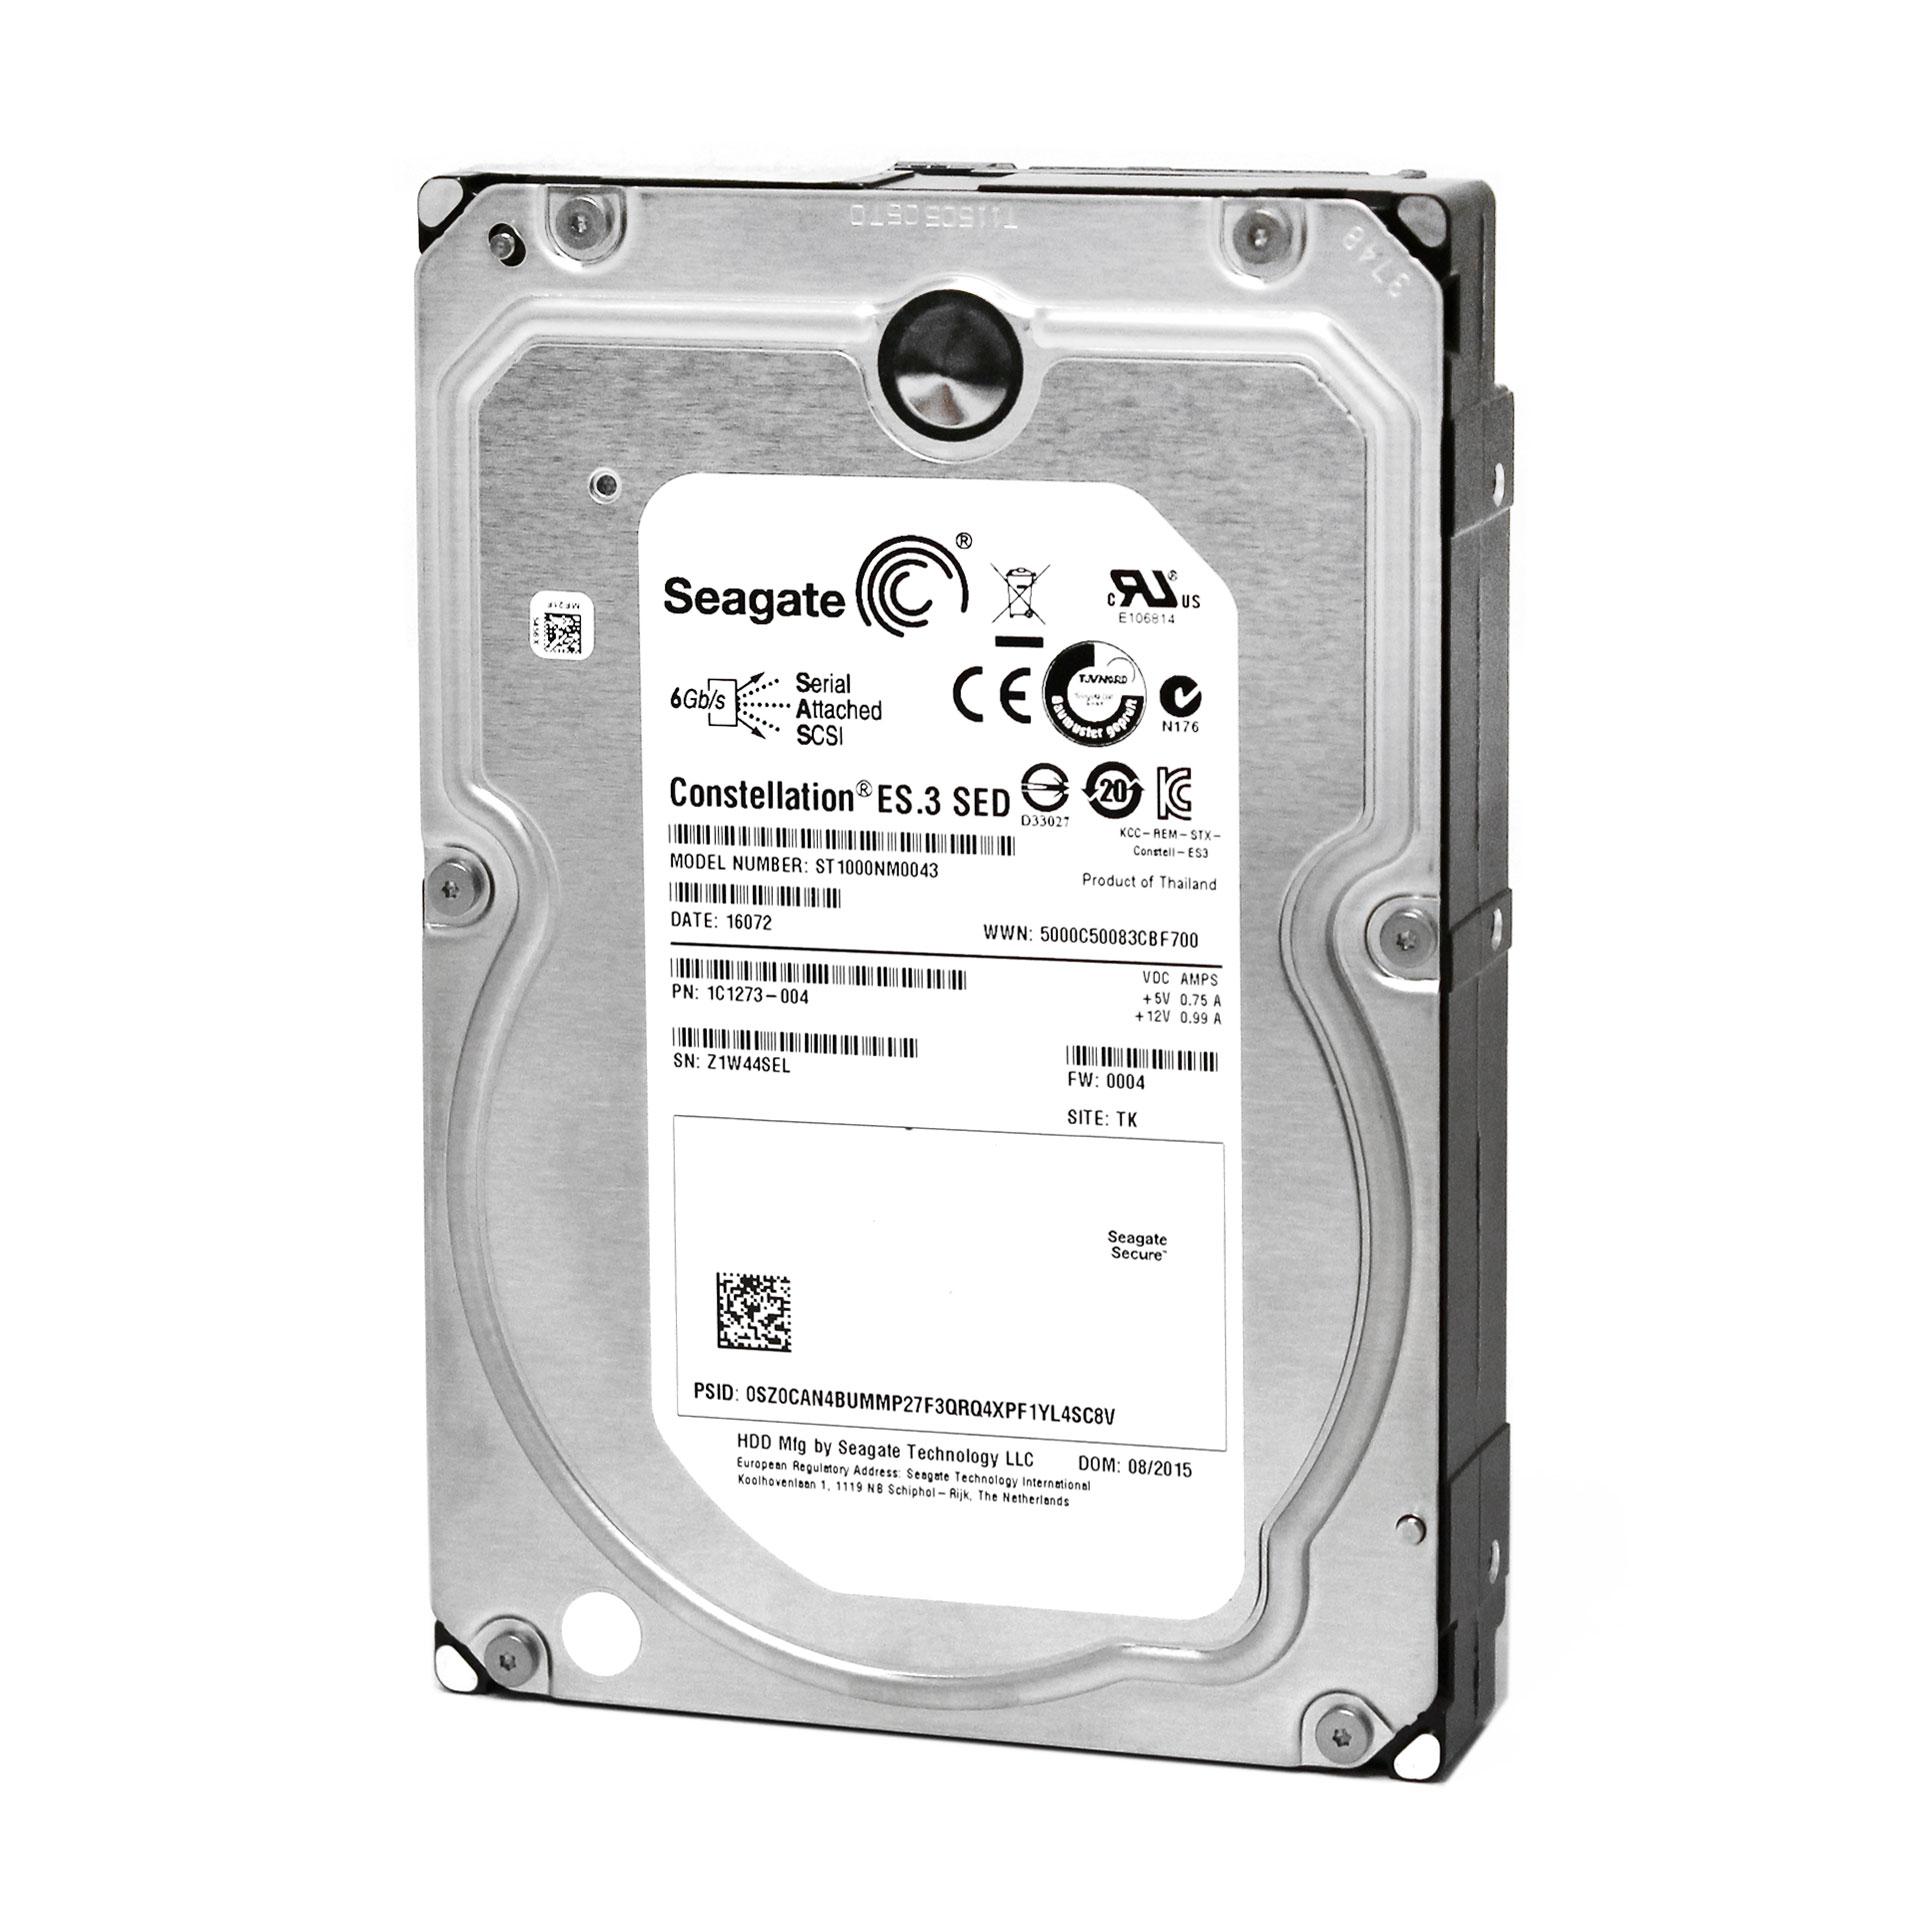 "Seagate 1TB 1C1273-004 ST1000NM0043 6GB/s 3.5"" Hard Drive"